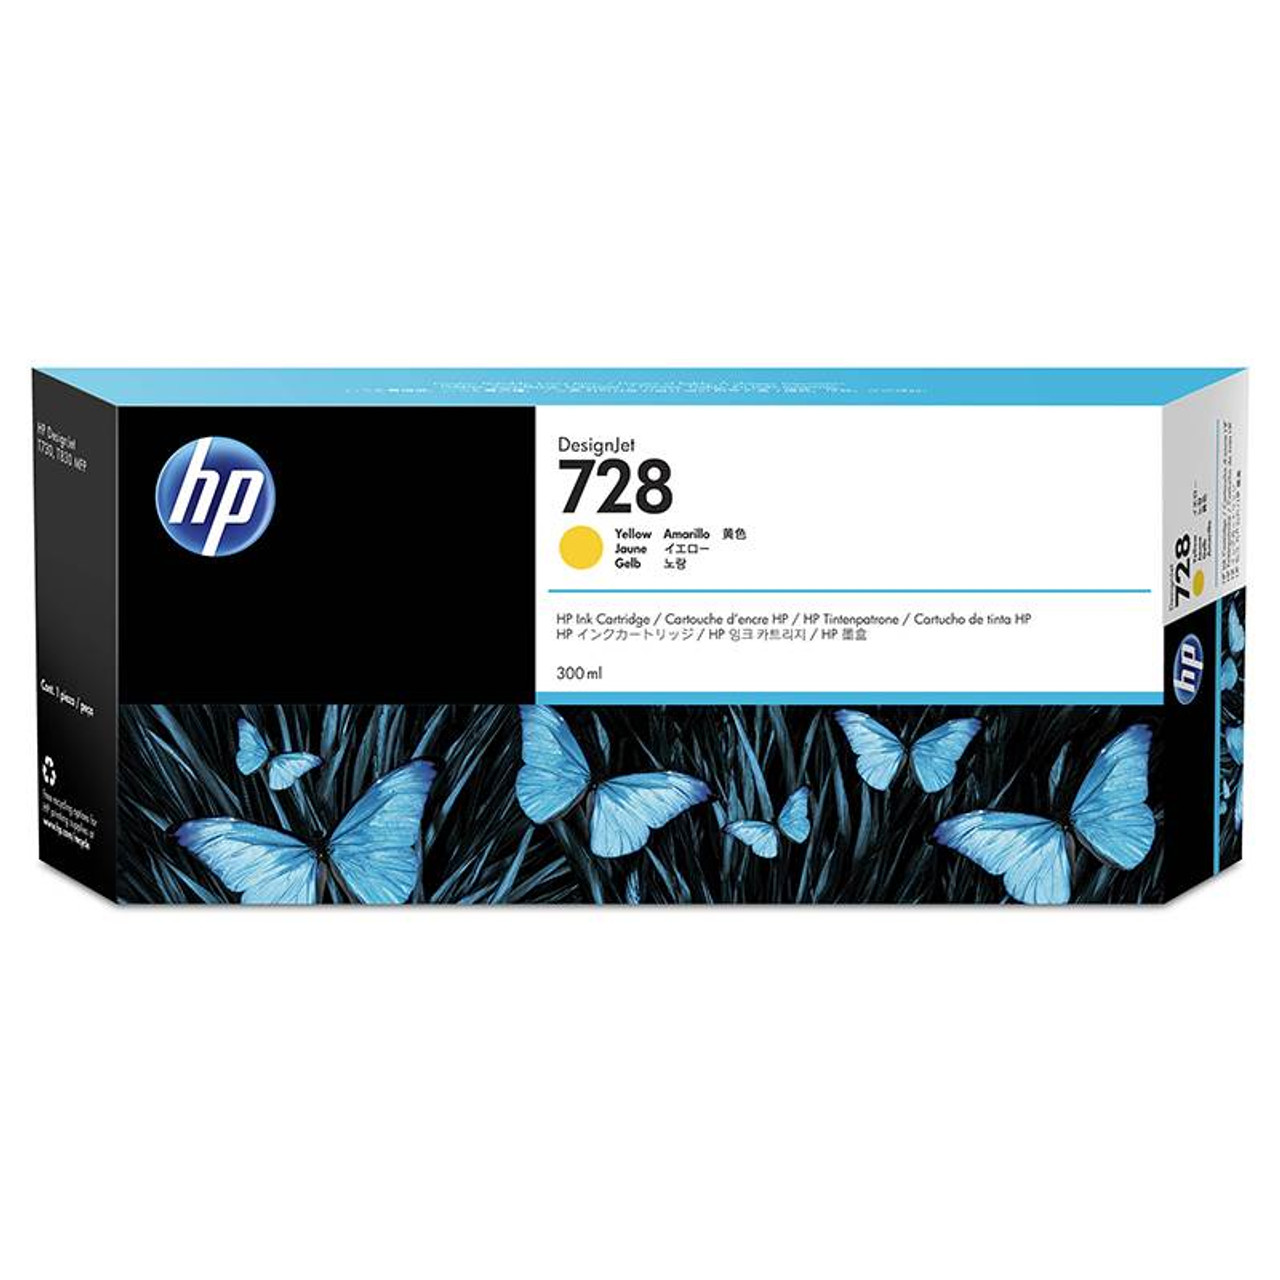 Image for HP728 300ML DesignJet Ink Cartridge - Yellow (F9K15A) CX Computer Superstore